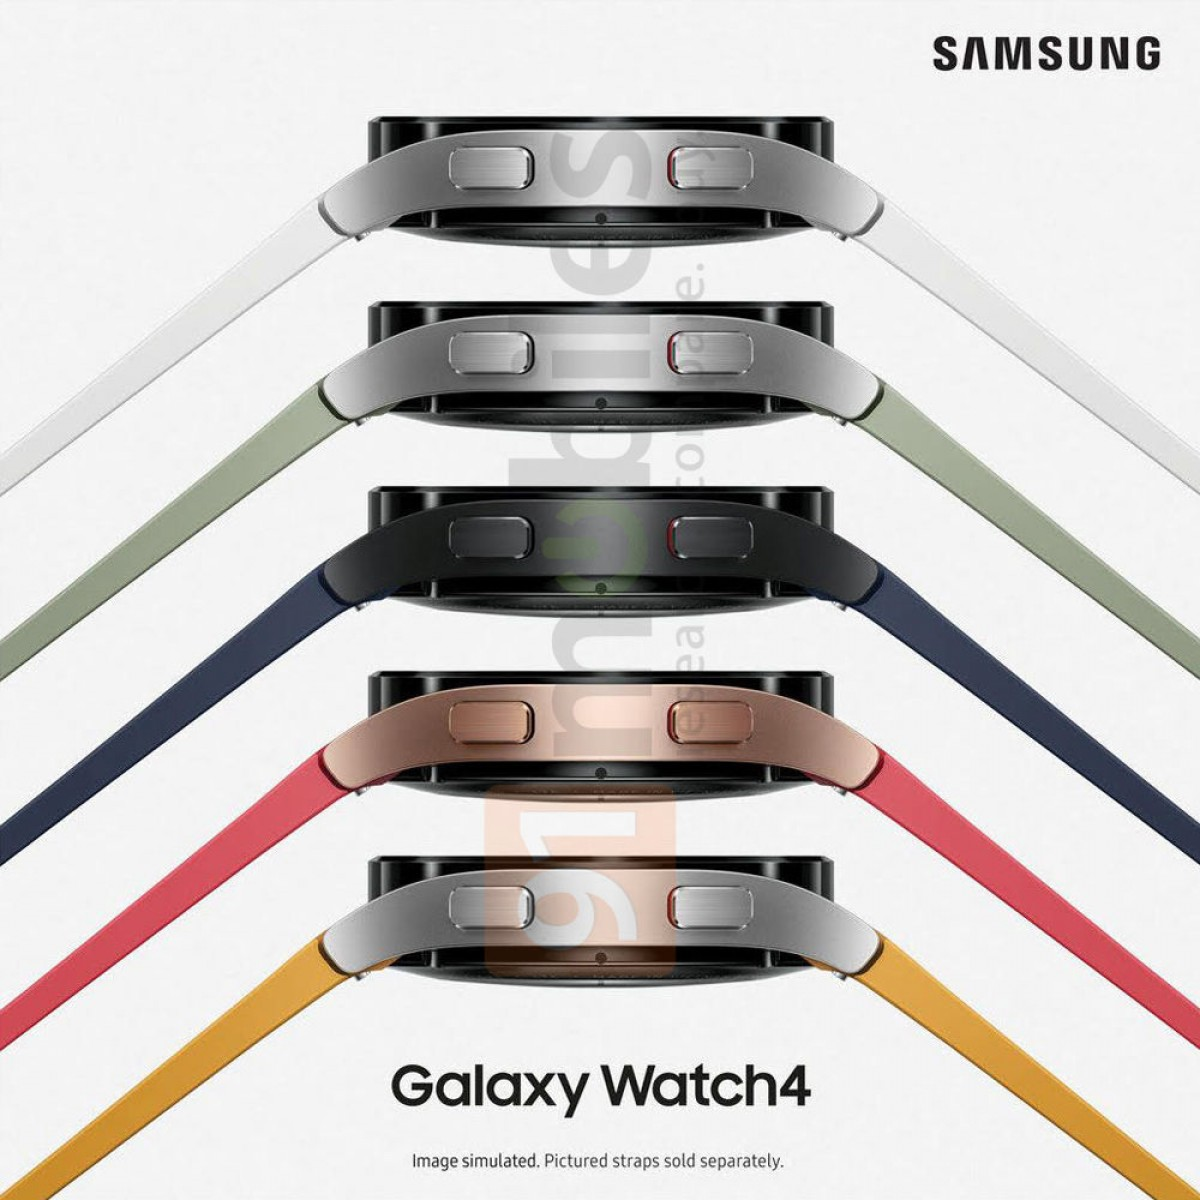 Samsung Galaxy Watch 4 Official Renders Leaked